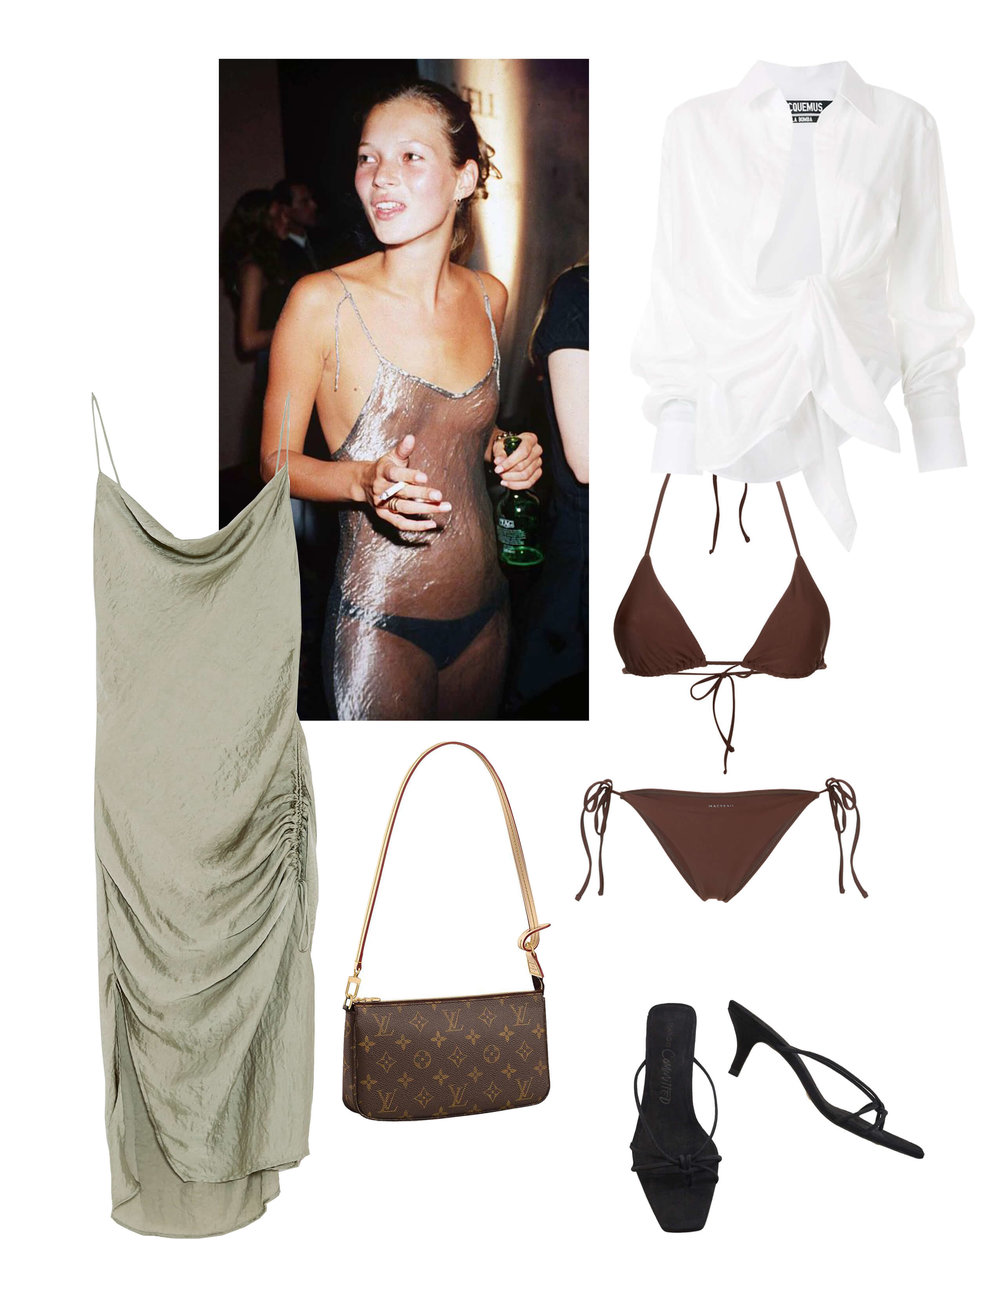 Zara  ruches lingerie style dress  | Louis Vuitton  pochette accessories  purse | Jacquemus   La Chemise Bahia blouse  | Matteau bikini  top  and  bottom  | Mango  leather sandals